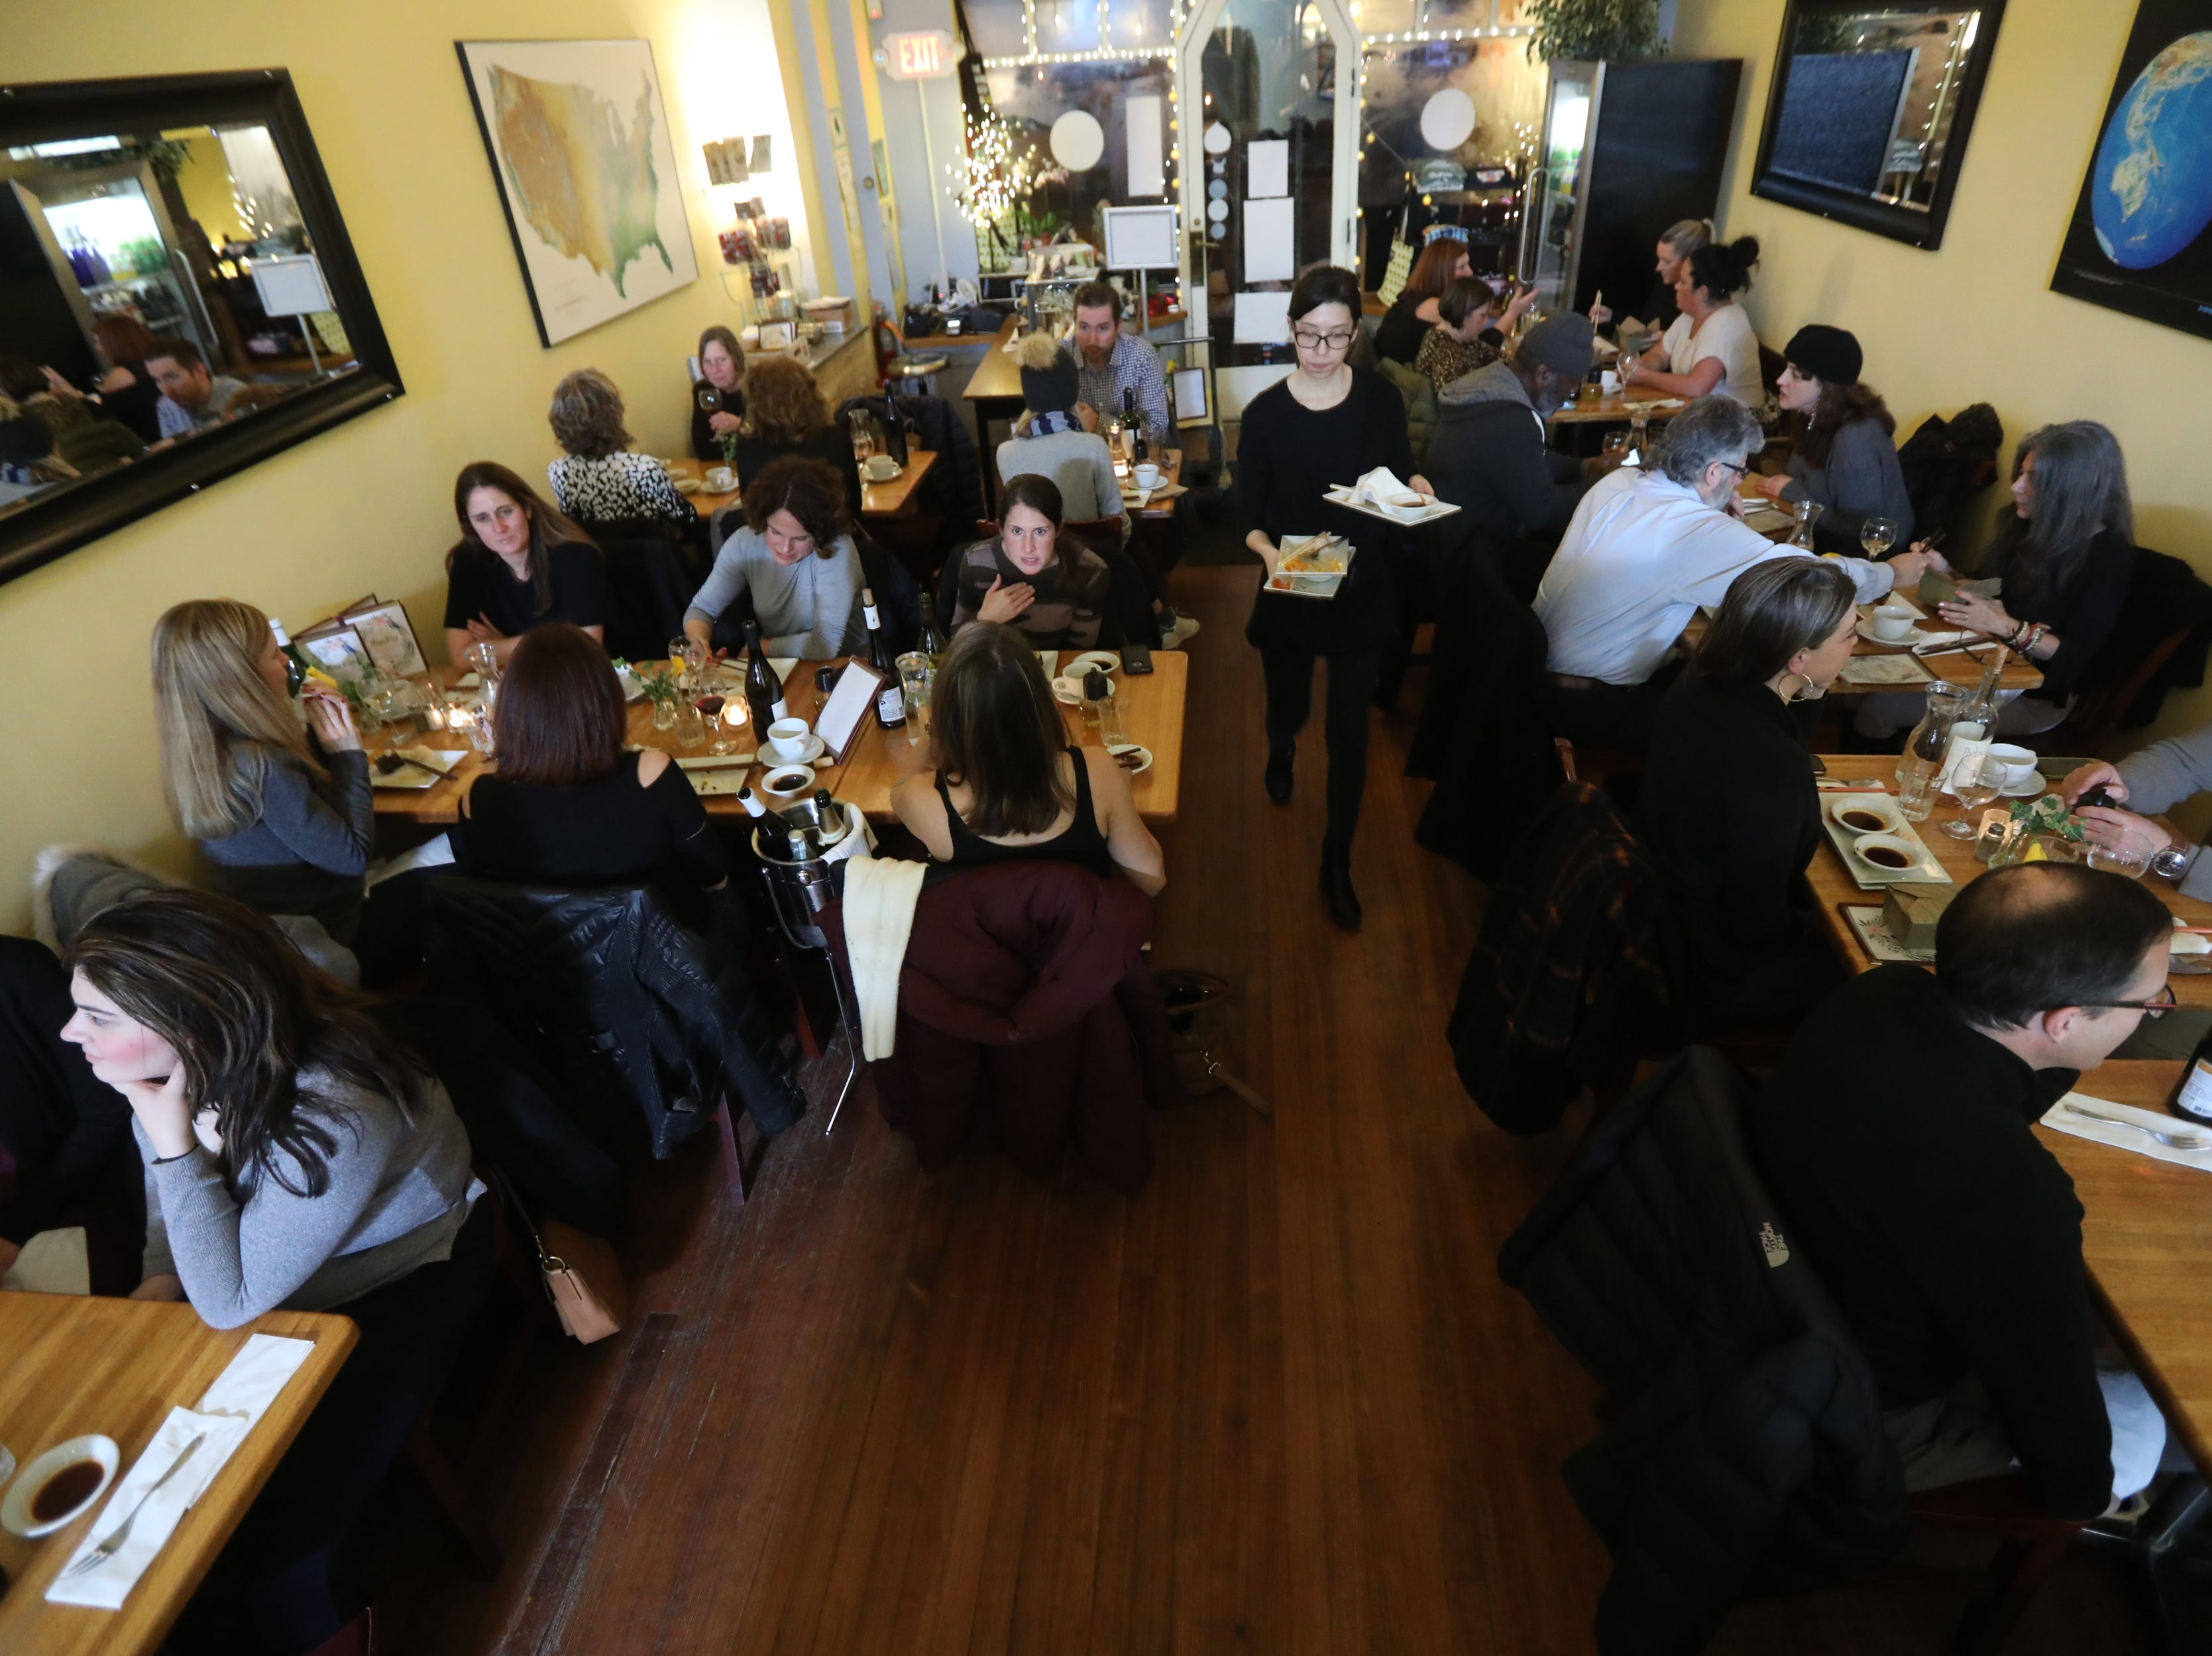 Those lucky enough to get a seat at a sold out pop-up dinner, enjoy their food at Mundo Vegan in Montclair.